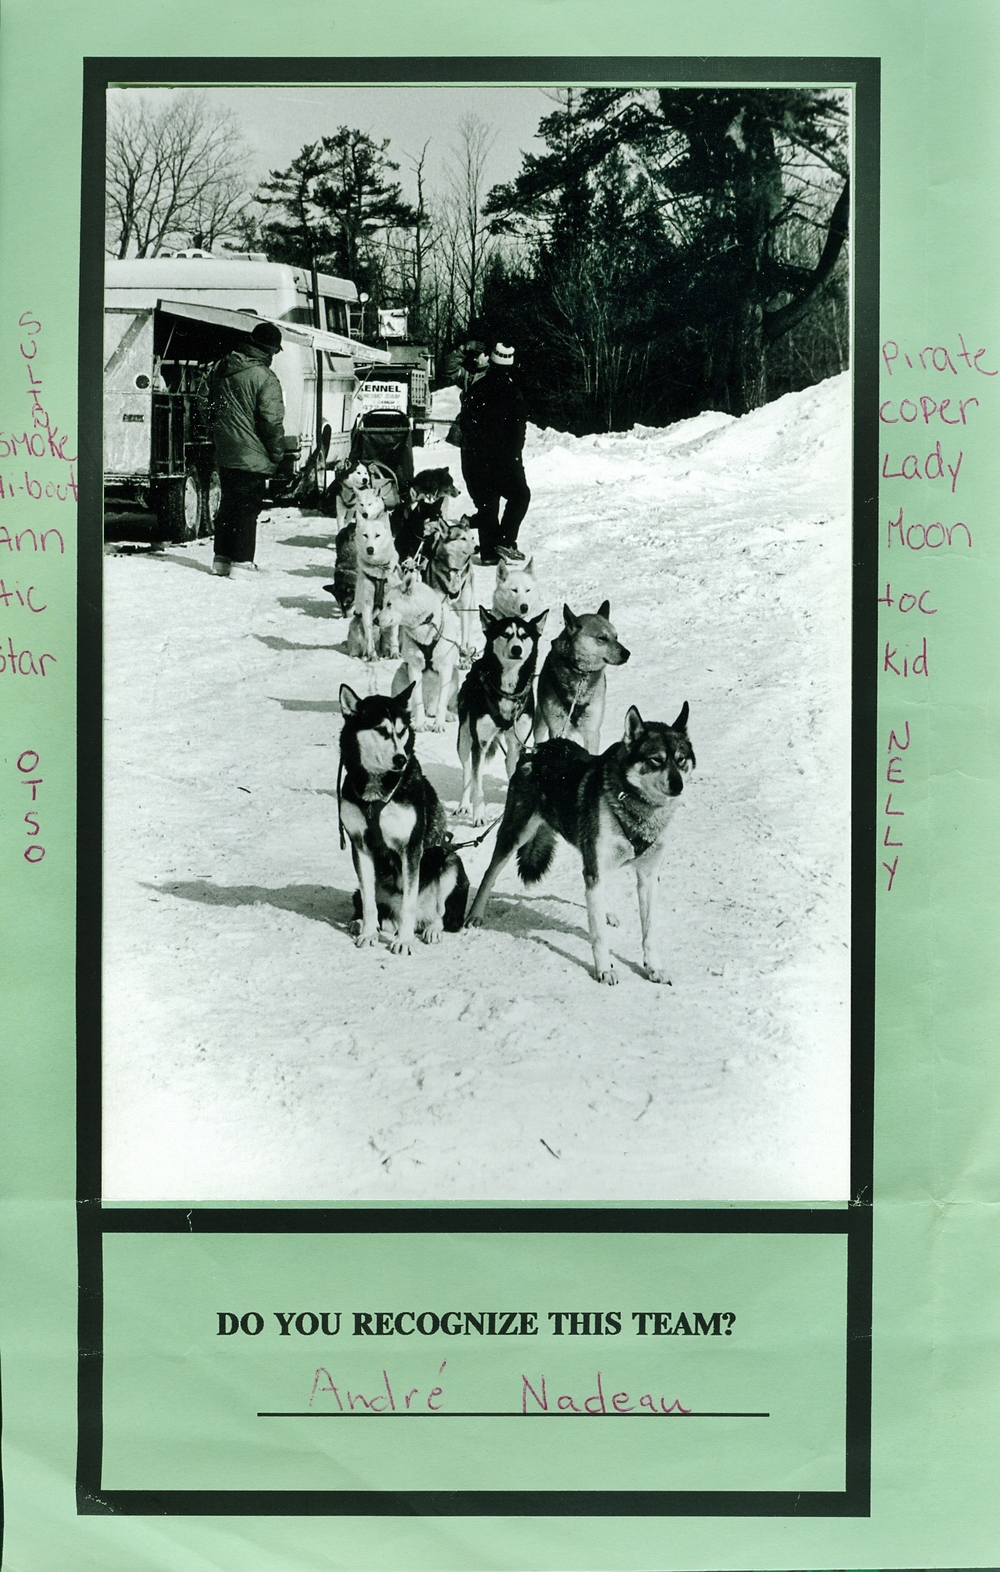 Snofest 1994 Dog team of Andre Nadeau.jpg